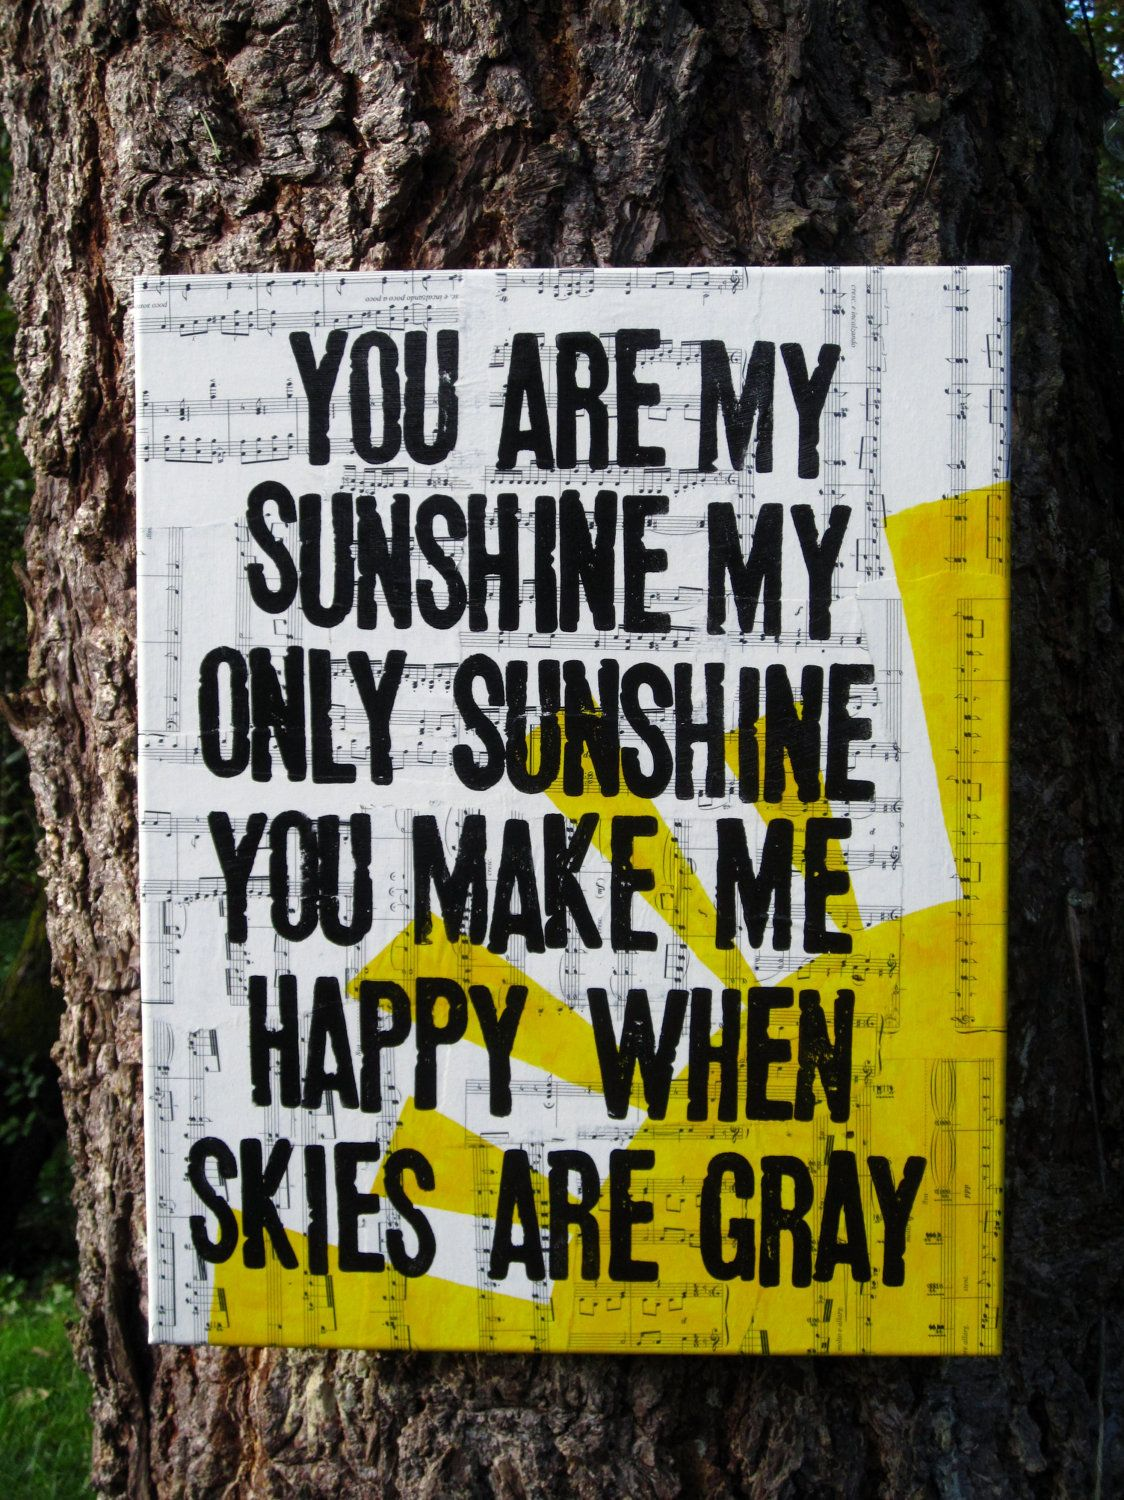 You Are My Sunshine My Only Sunshine Sheet Music